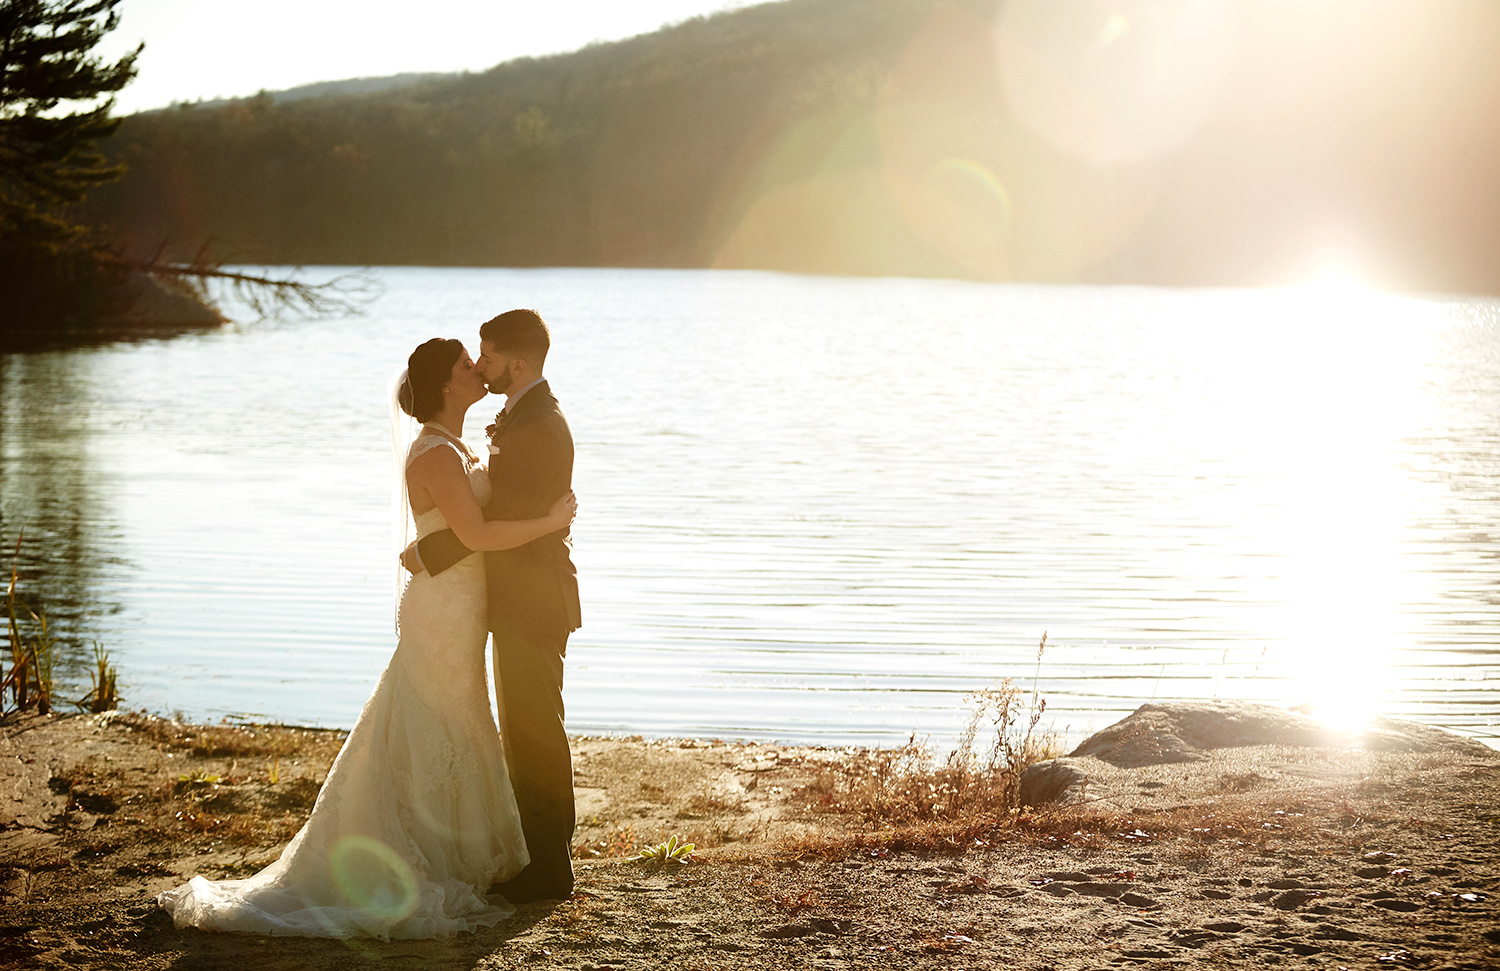 161119_ArrowParkLake&LodgeWedding_By_BriJohnsonWeddings_0094.jpg